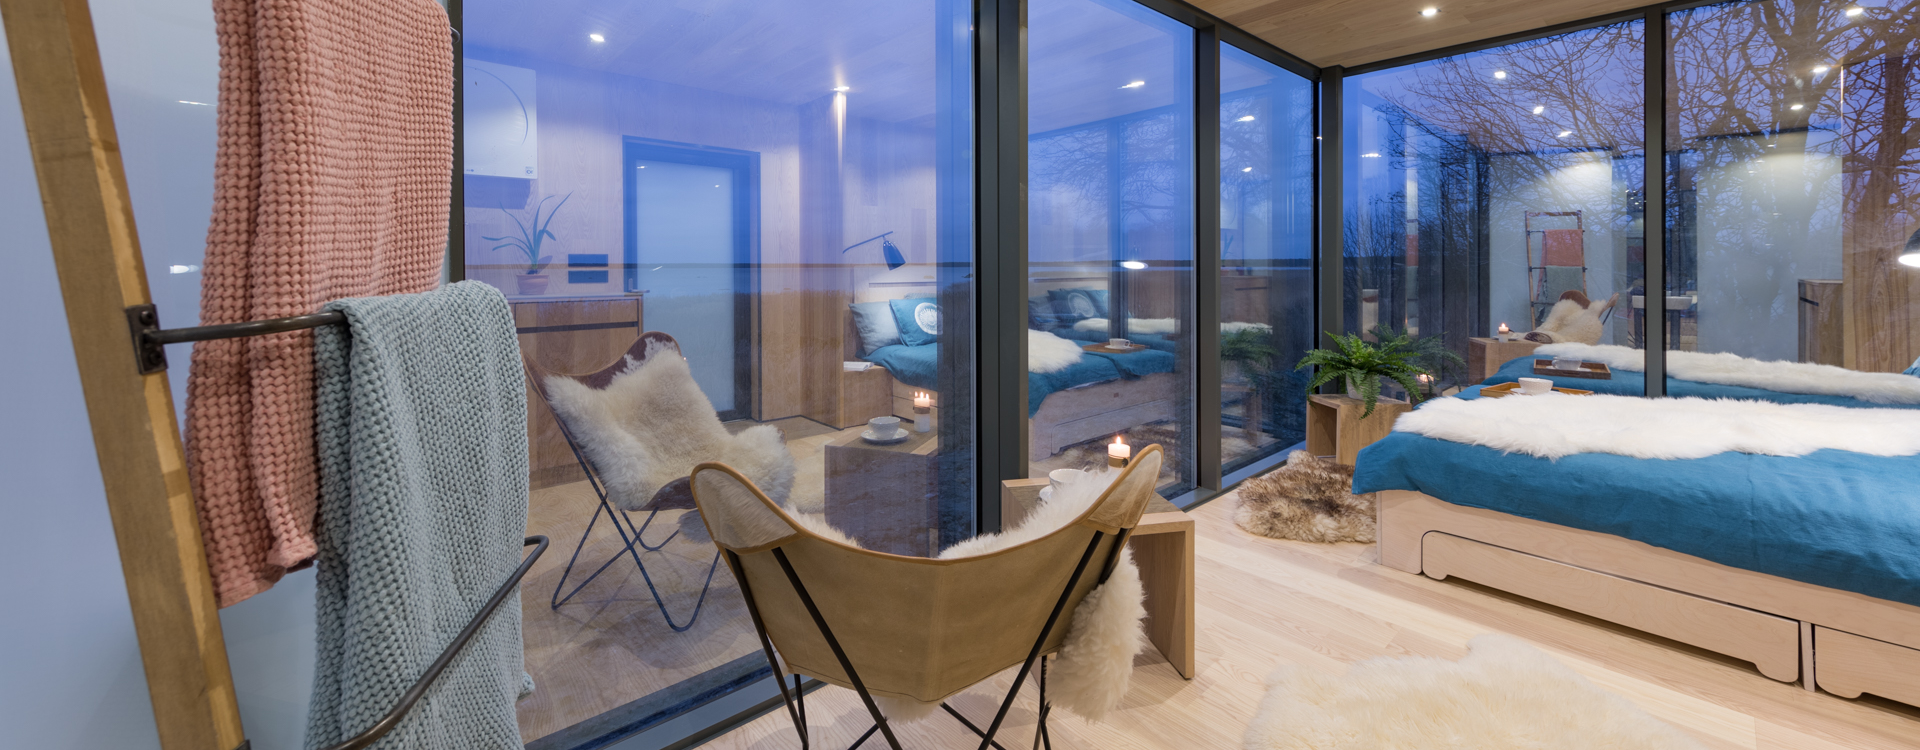 These gorgeous glass homes can pop up in 8 hours! – ÖÖD